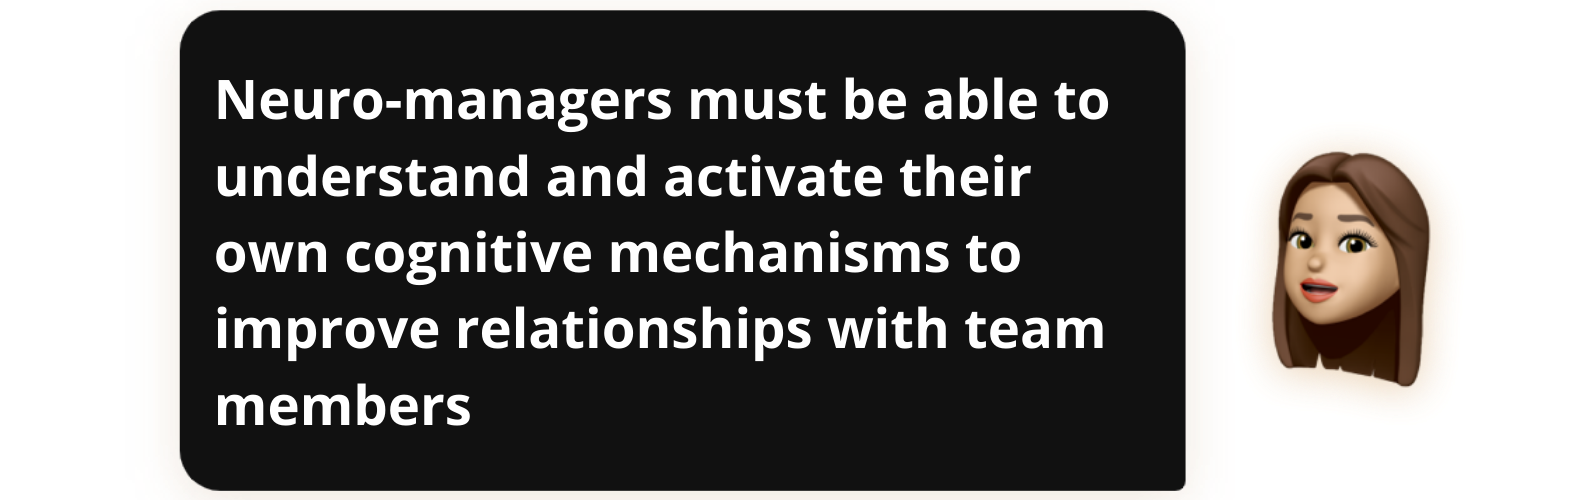 Neuro-managers must be able to understand and activate their own cognitive mechanisms to improve relationships with team members - Popwork